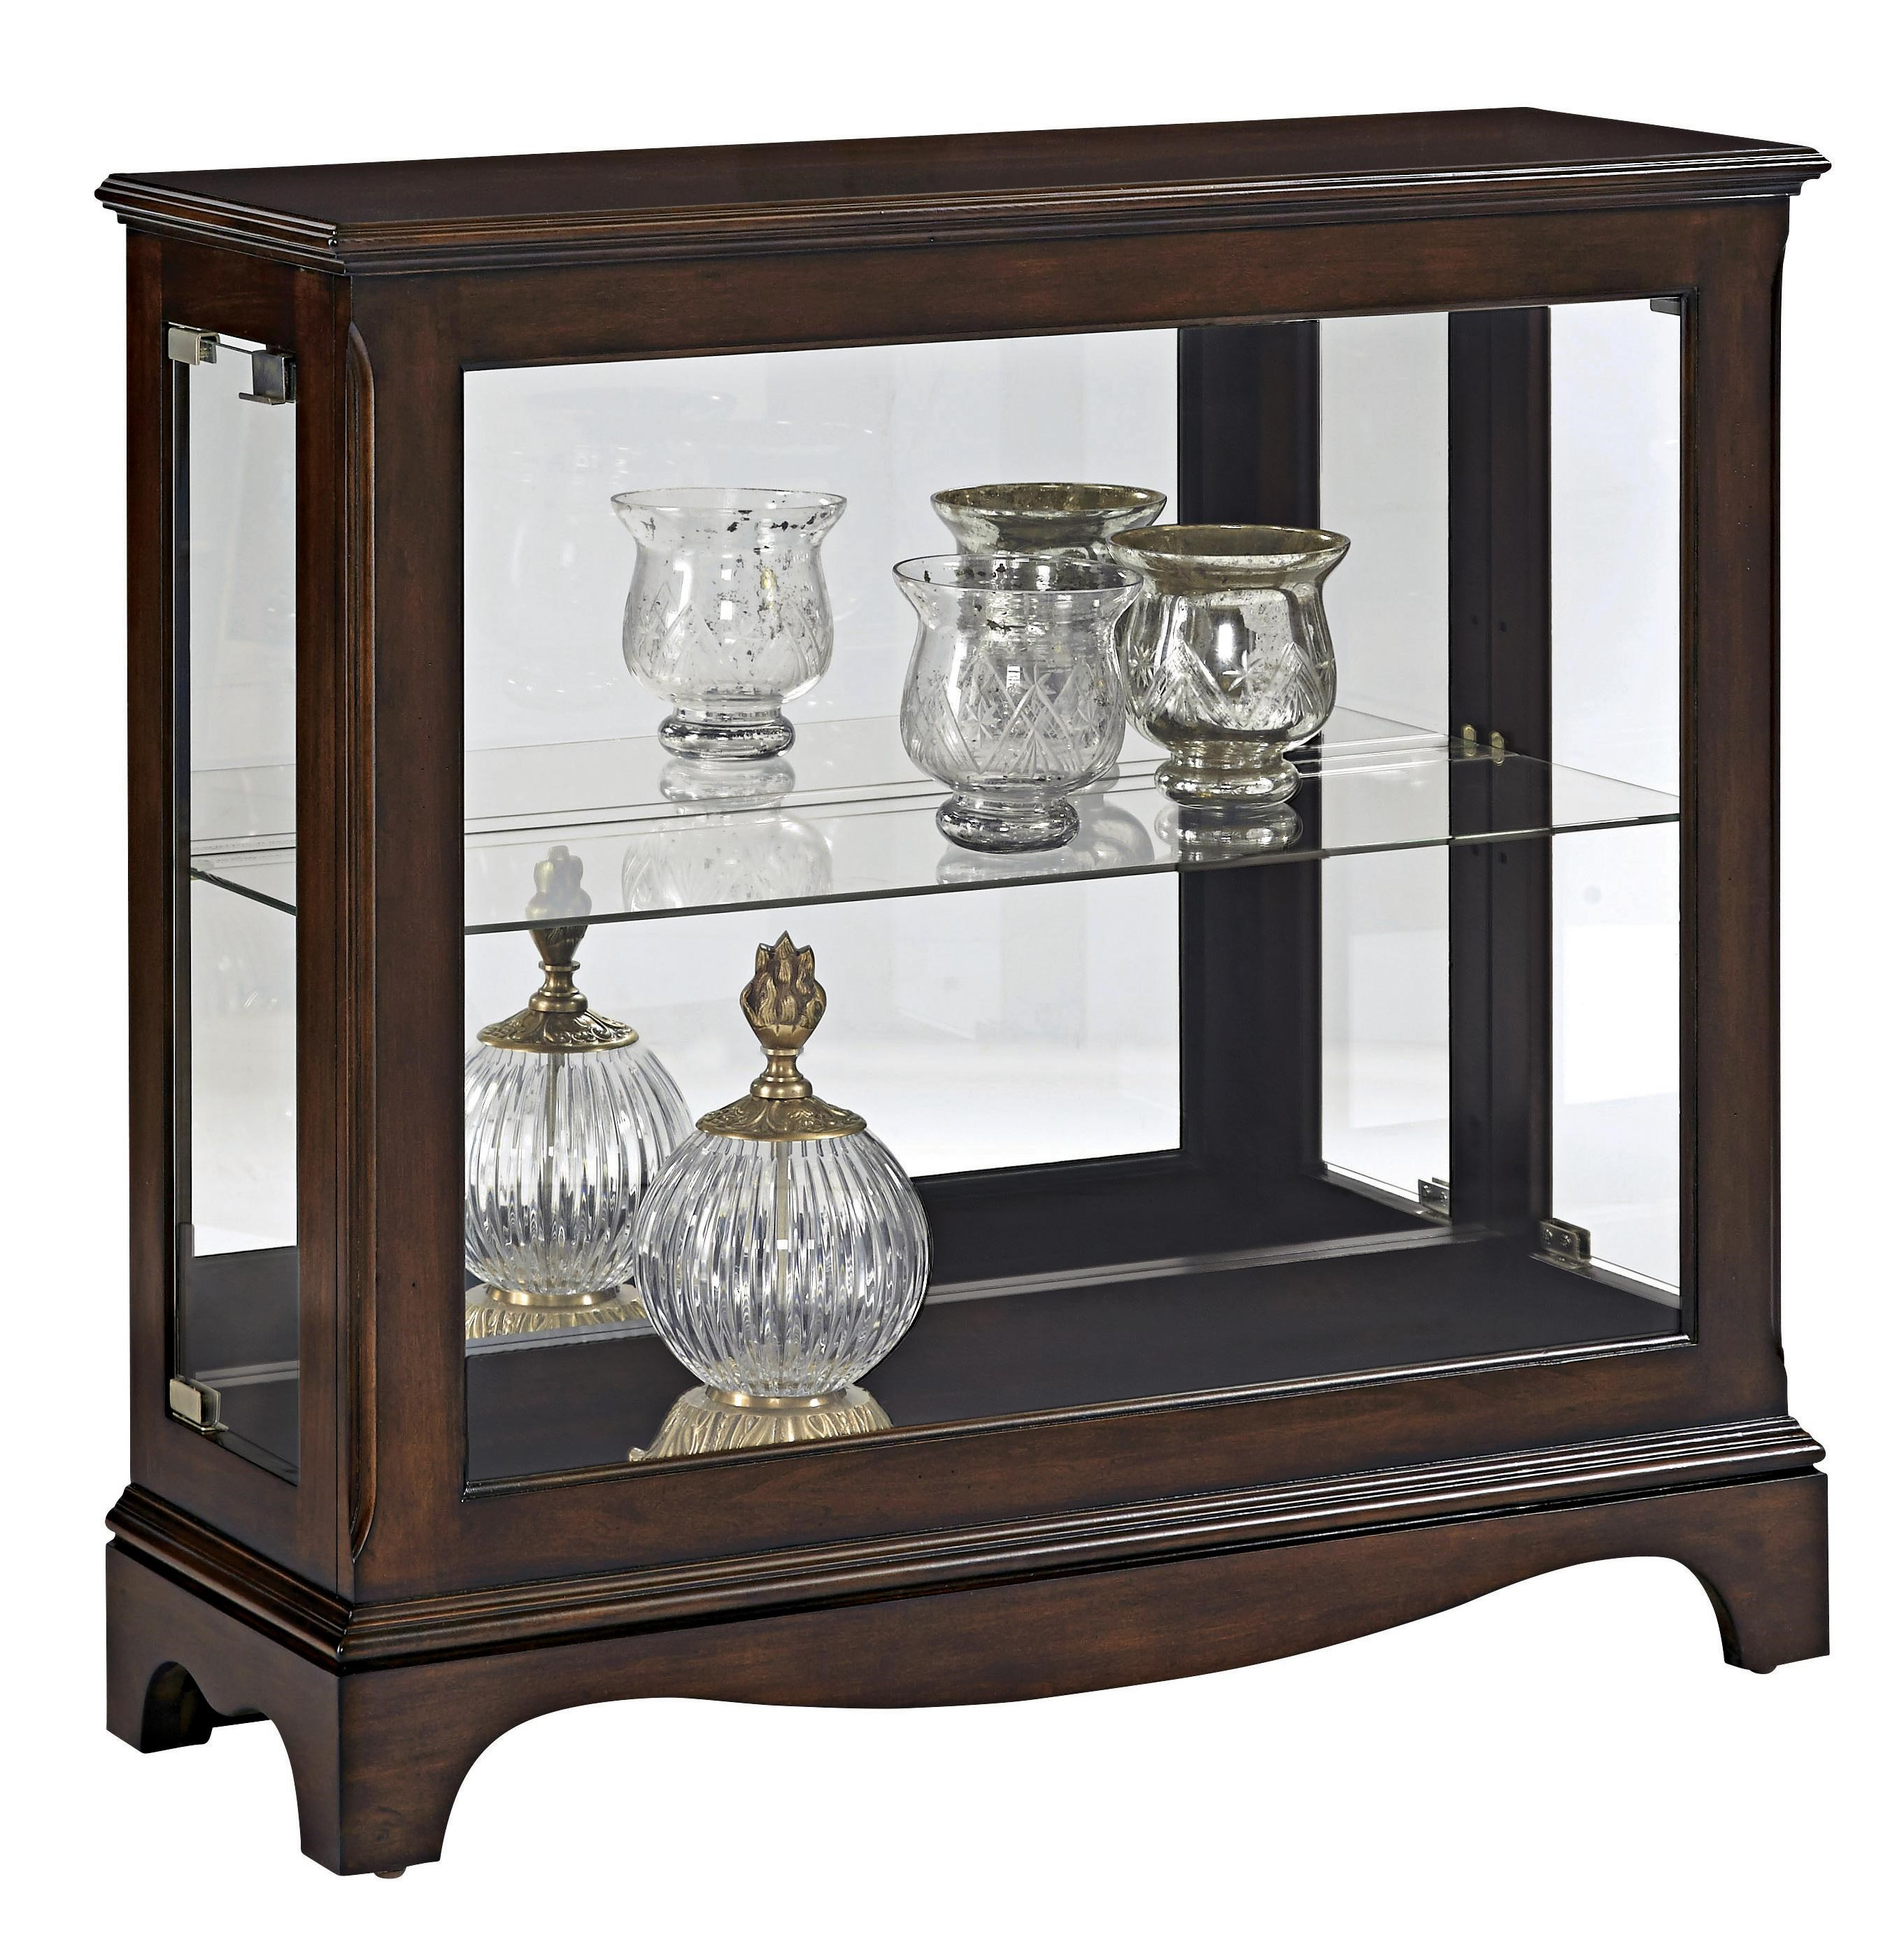 Pulaski Furniture Curios Petite Display Console - Lindy's ...